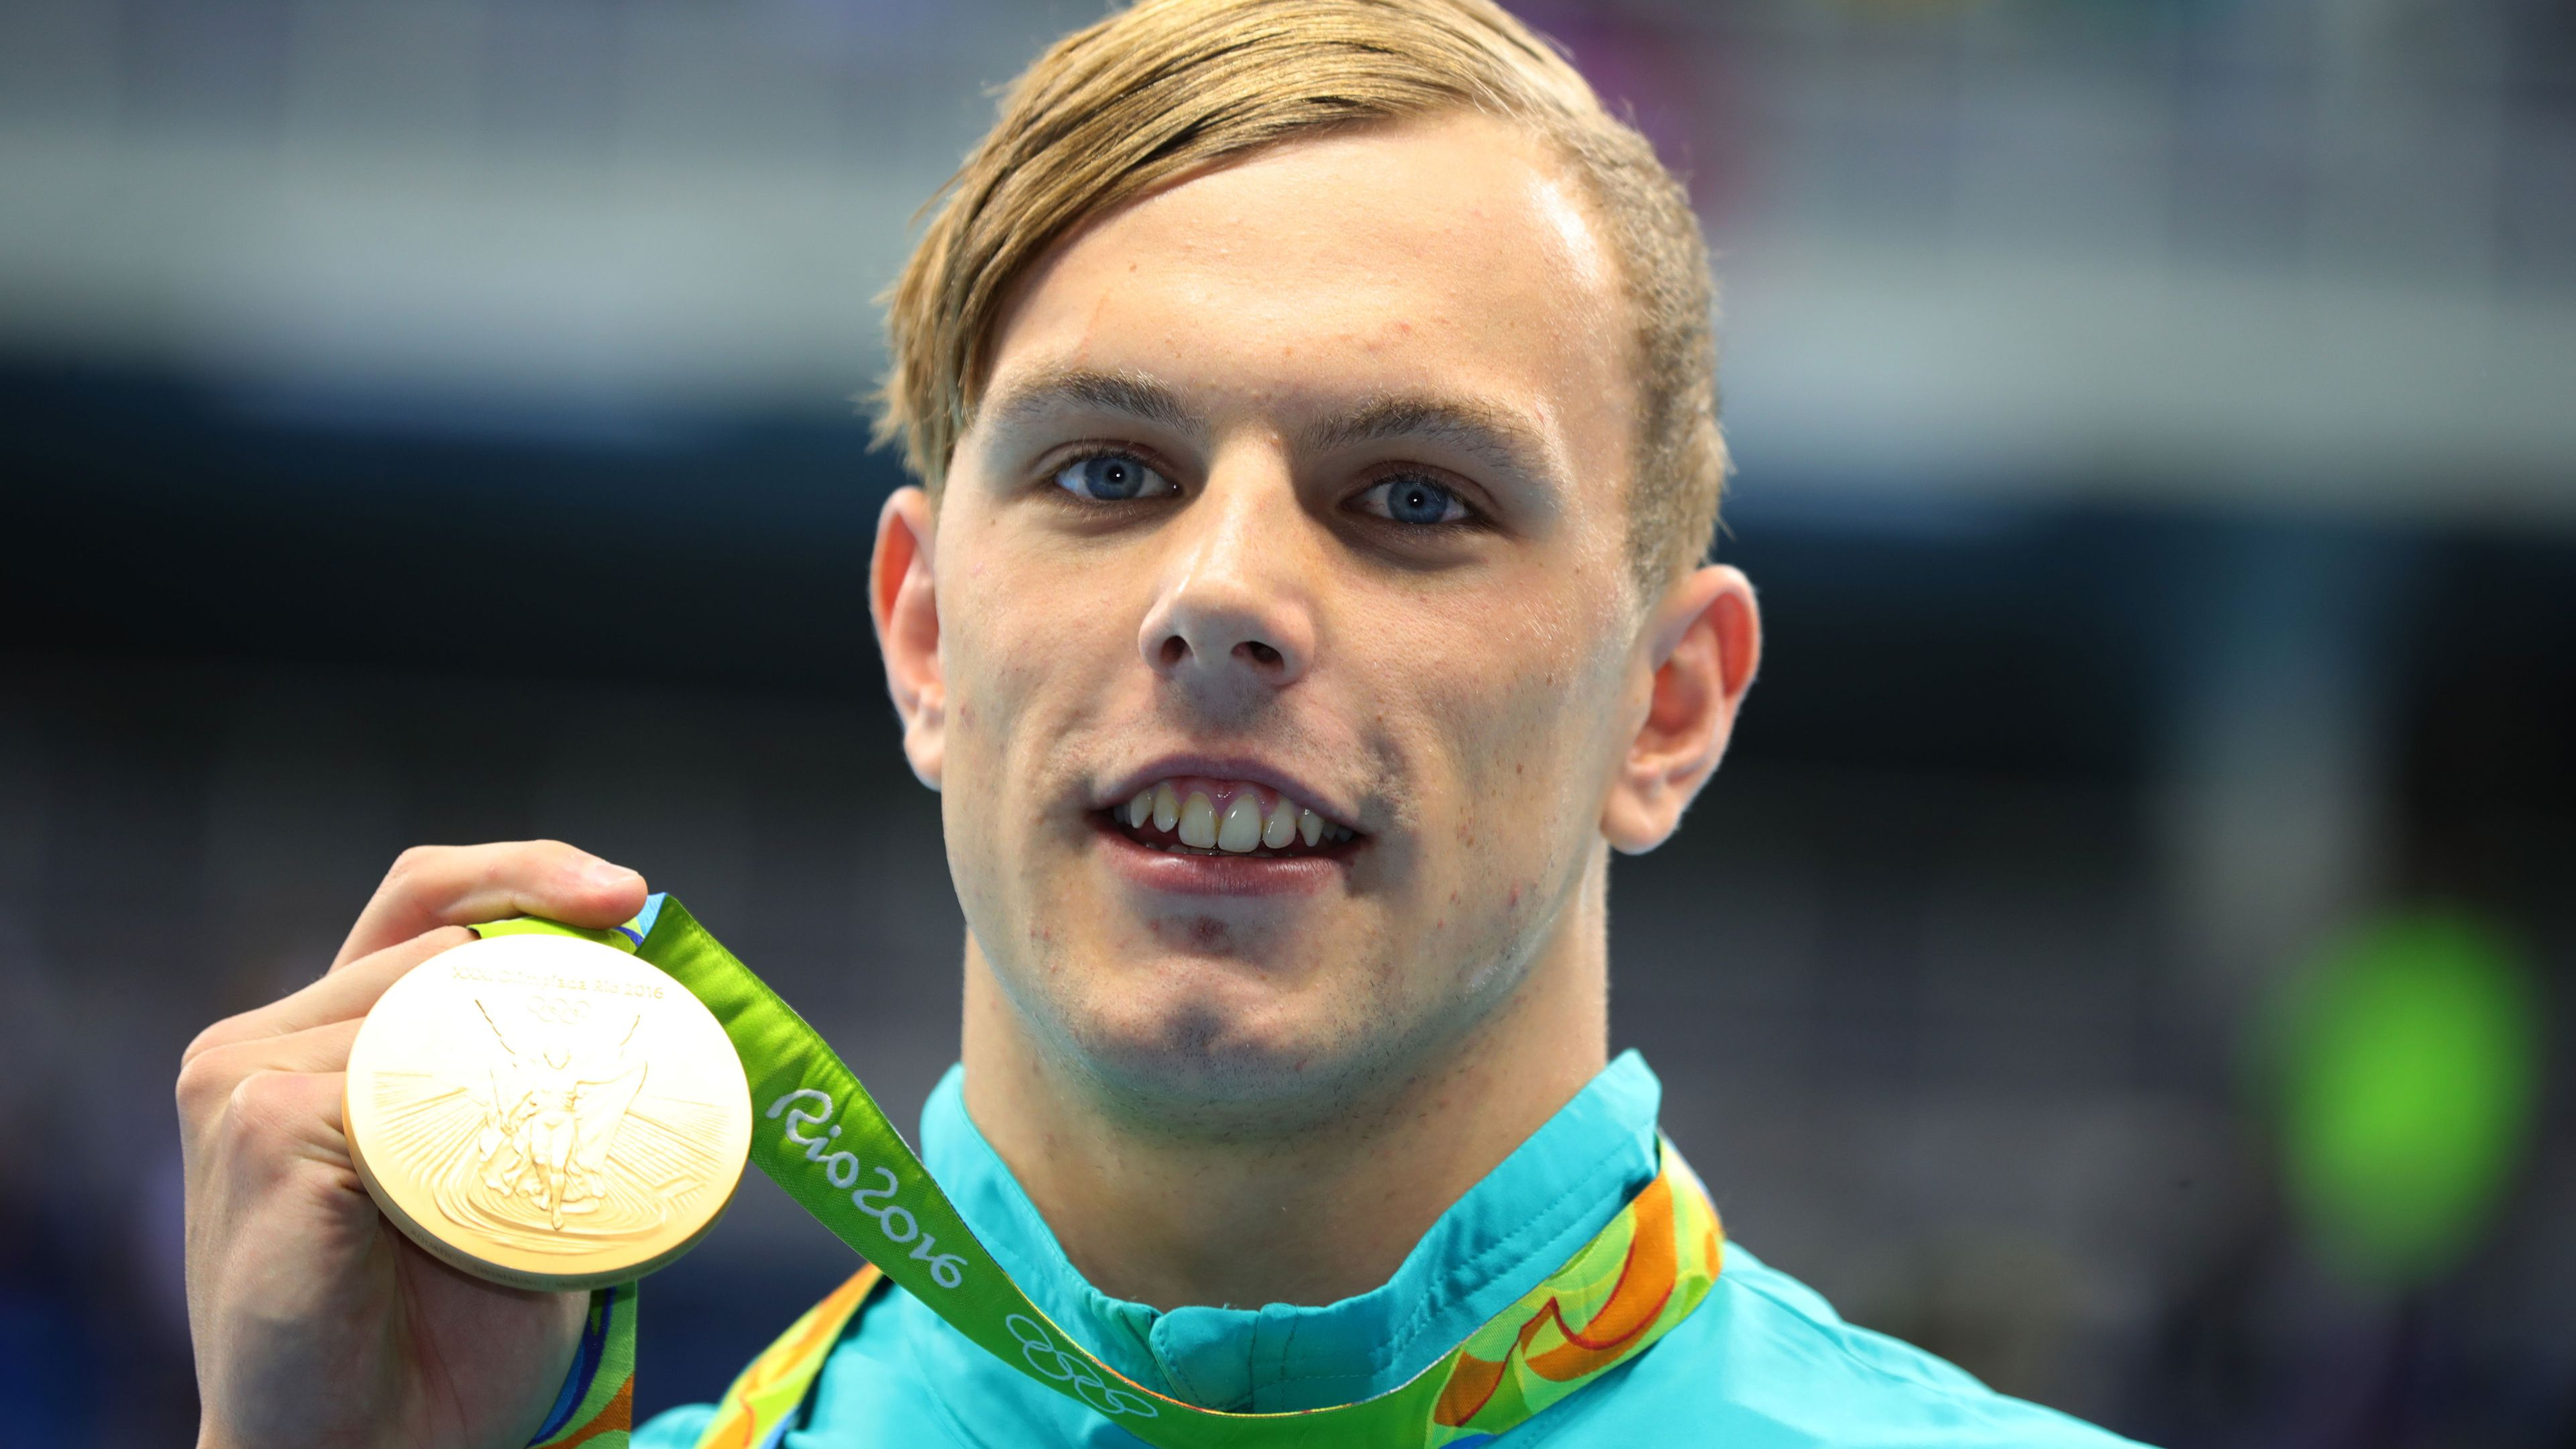 Kyle Chalmers after winning gold in the 100m freestyle at the Rio Olympics.